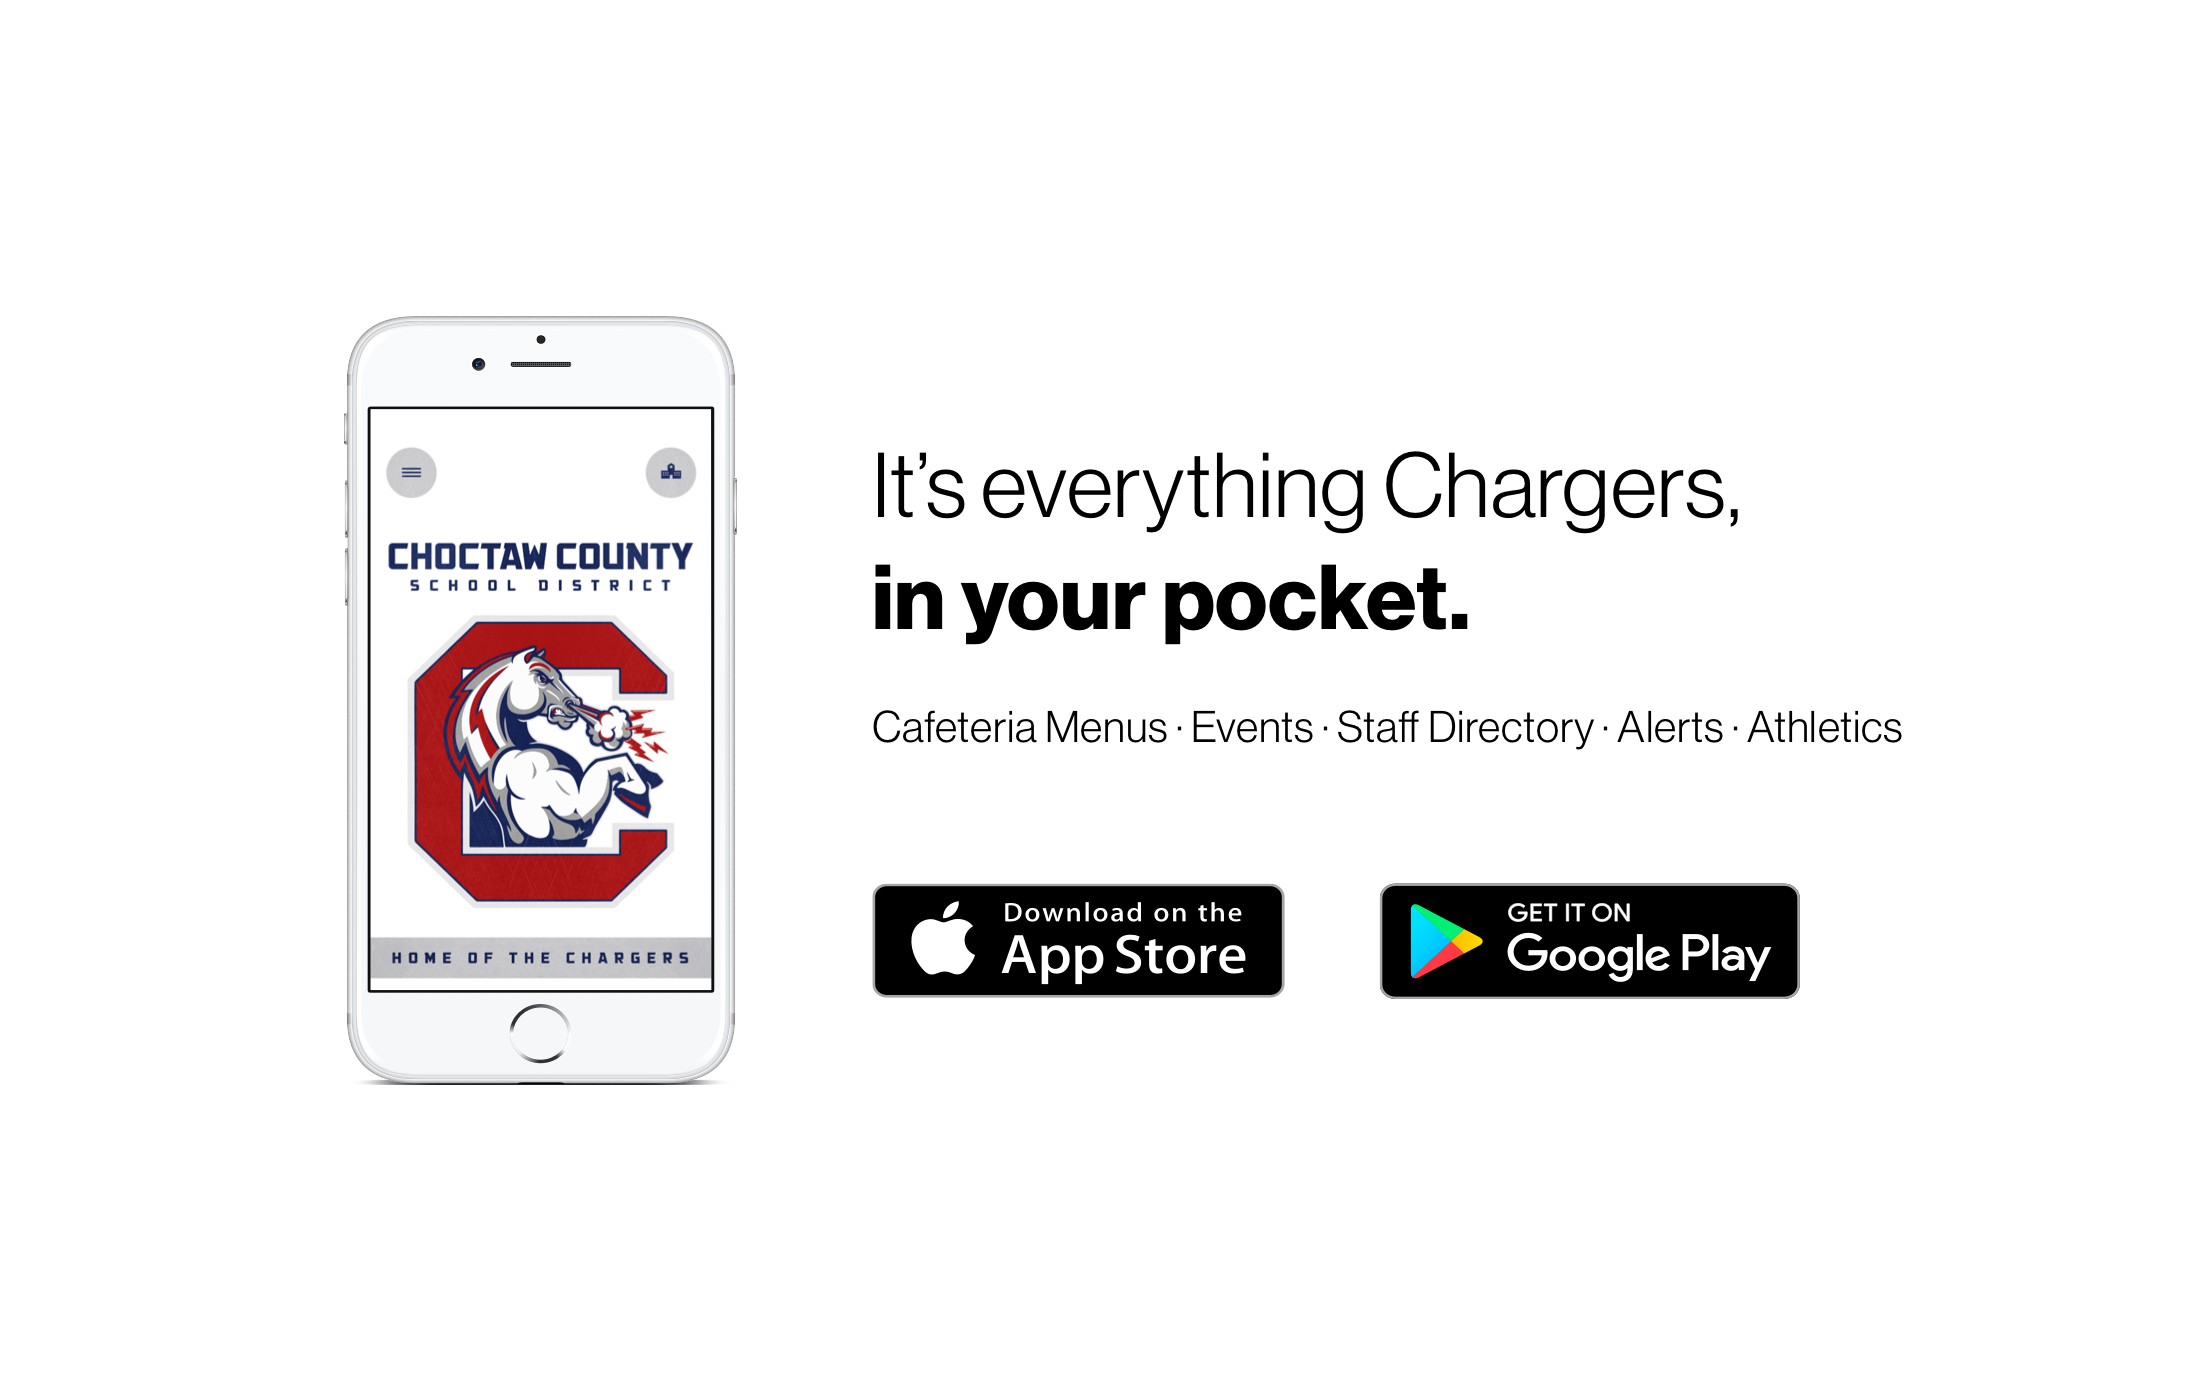 It's everything chargers in your pocket. Available on Apple and Google App Stores